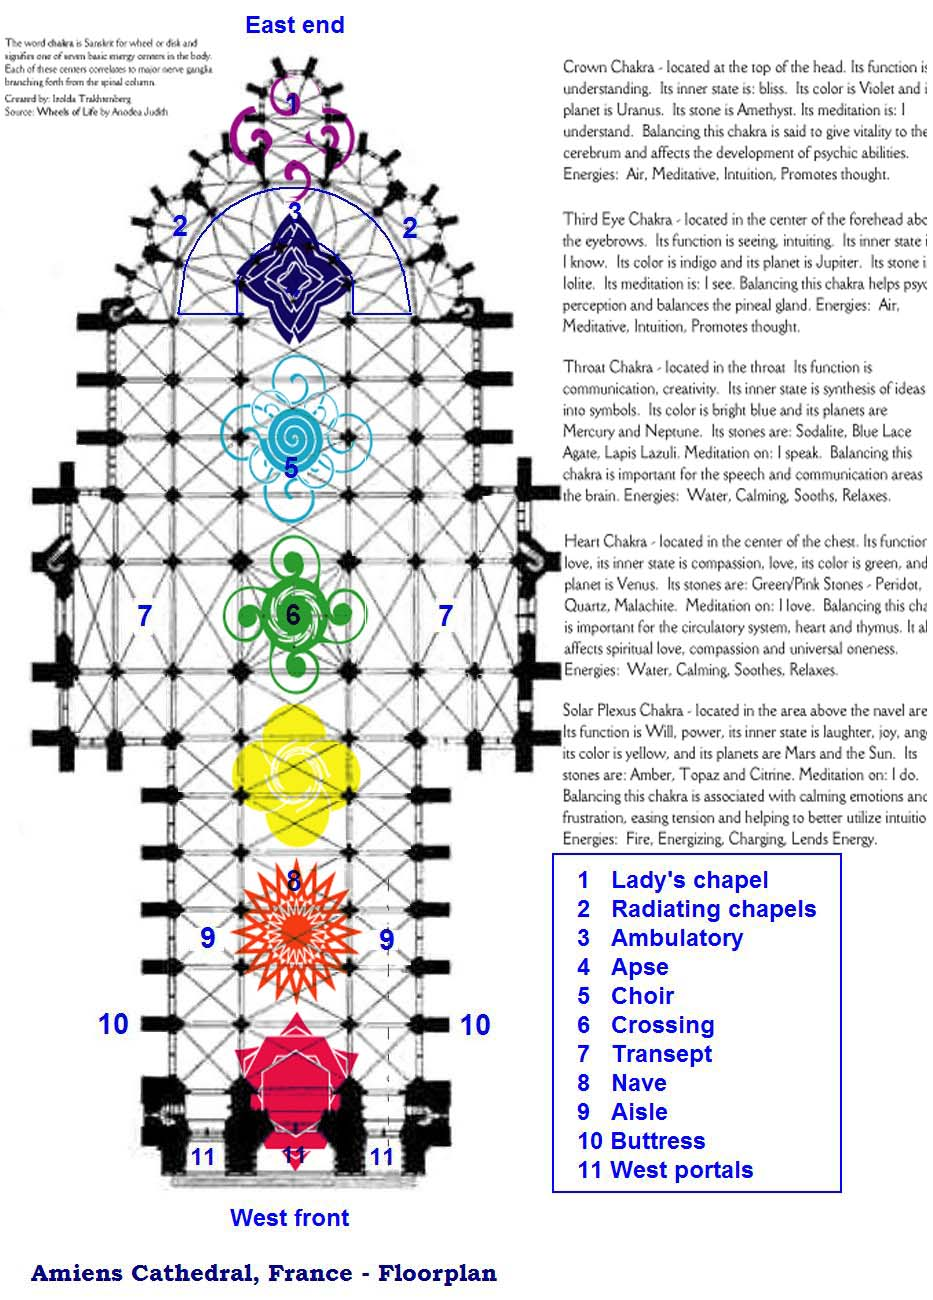 Pearls Of War The Chakras And Cathedrals Heart Diagram Old Love On Pinterest